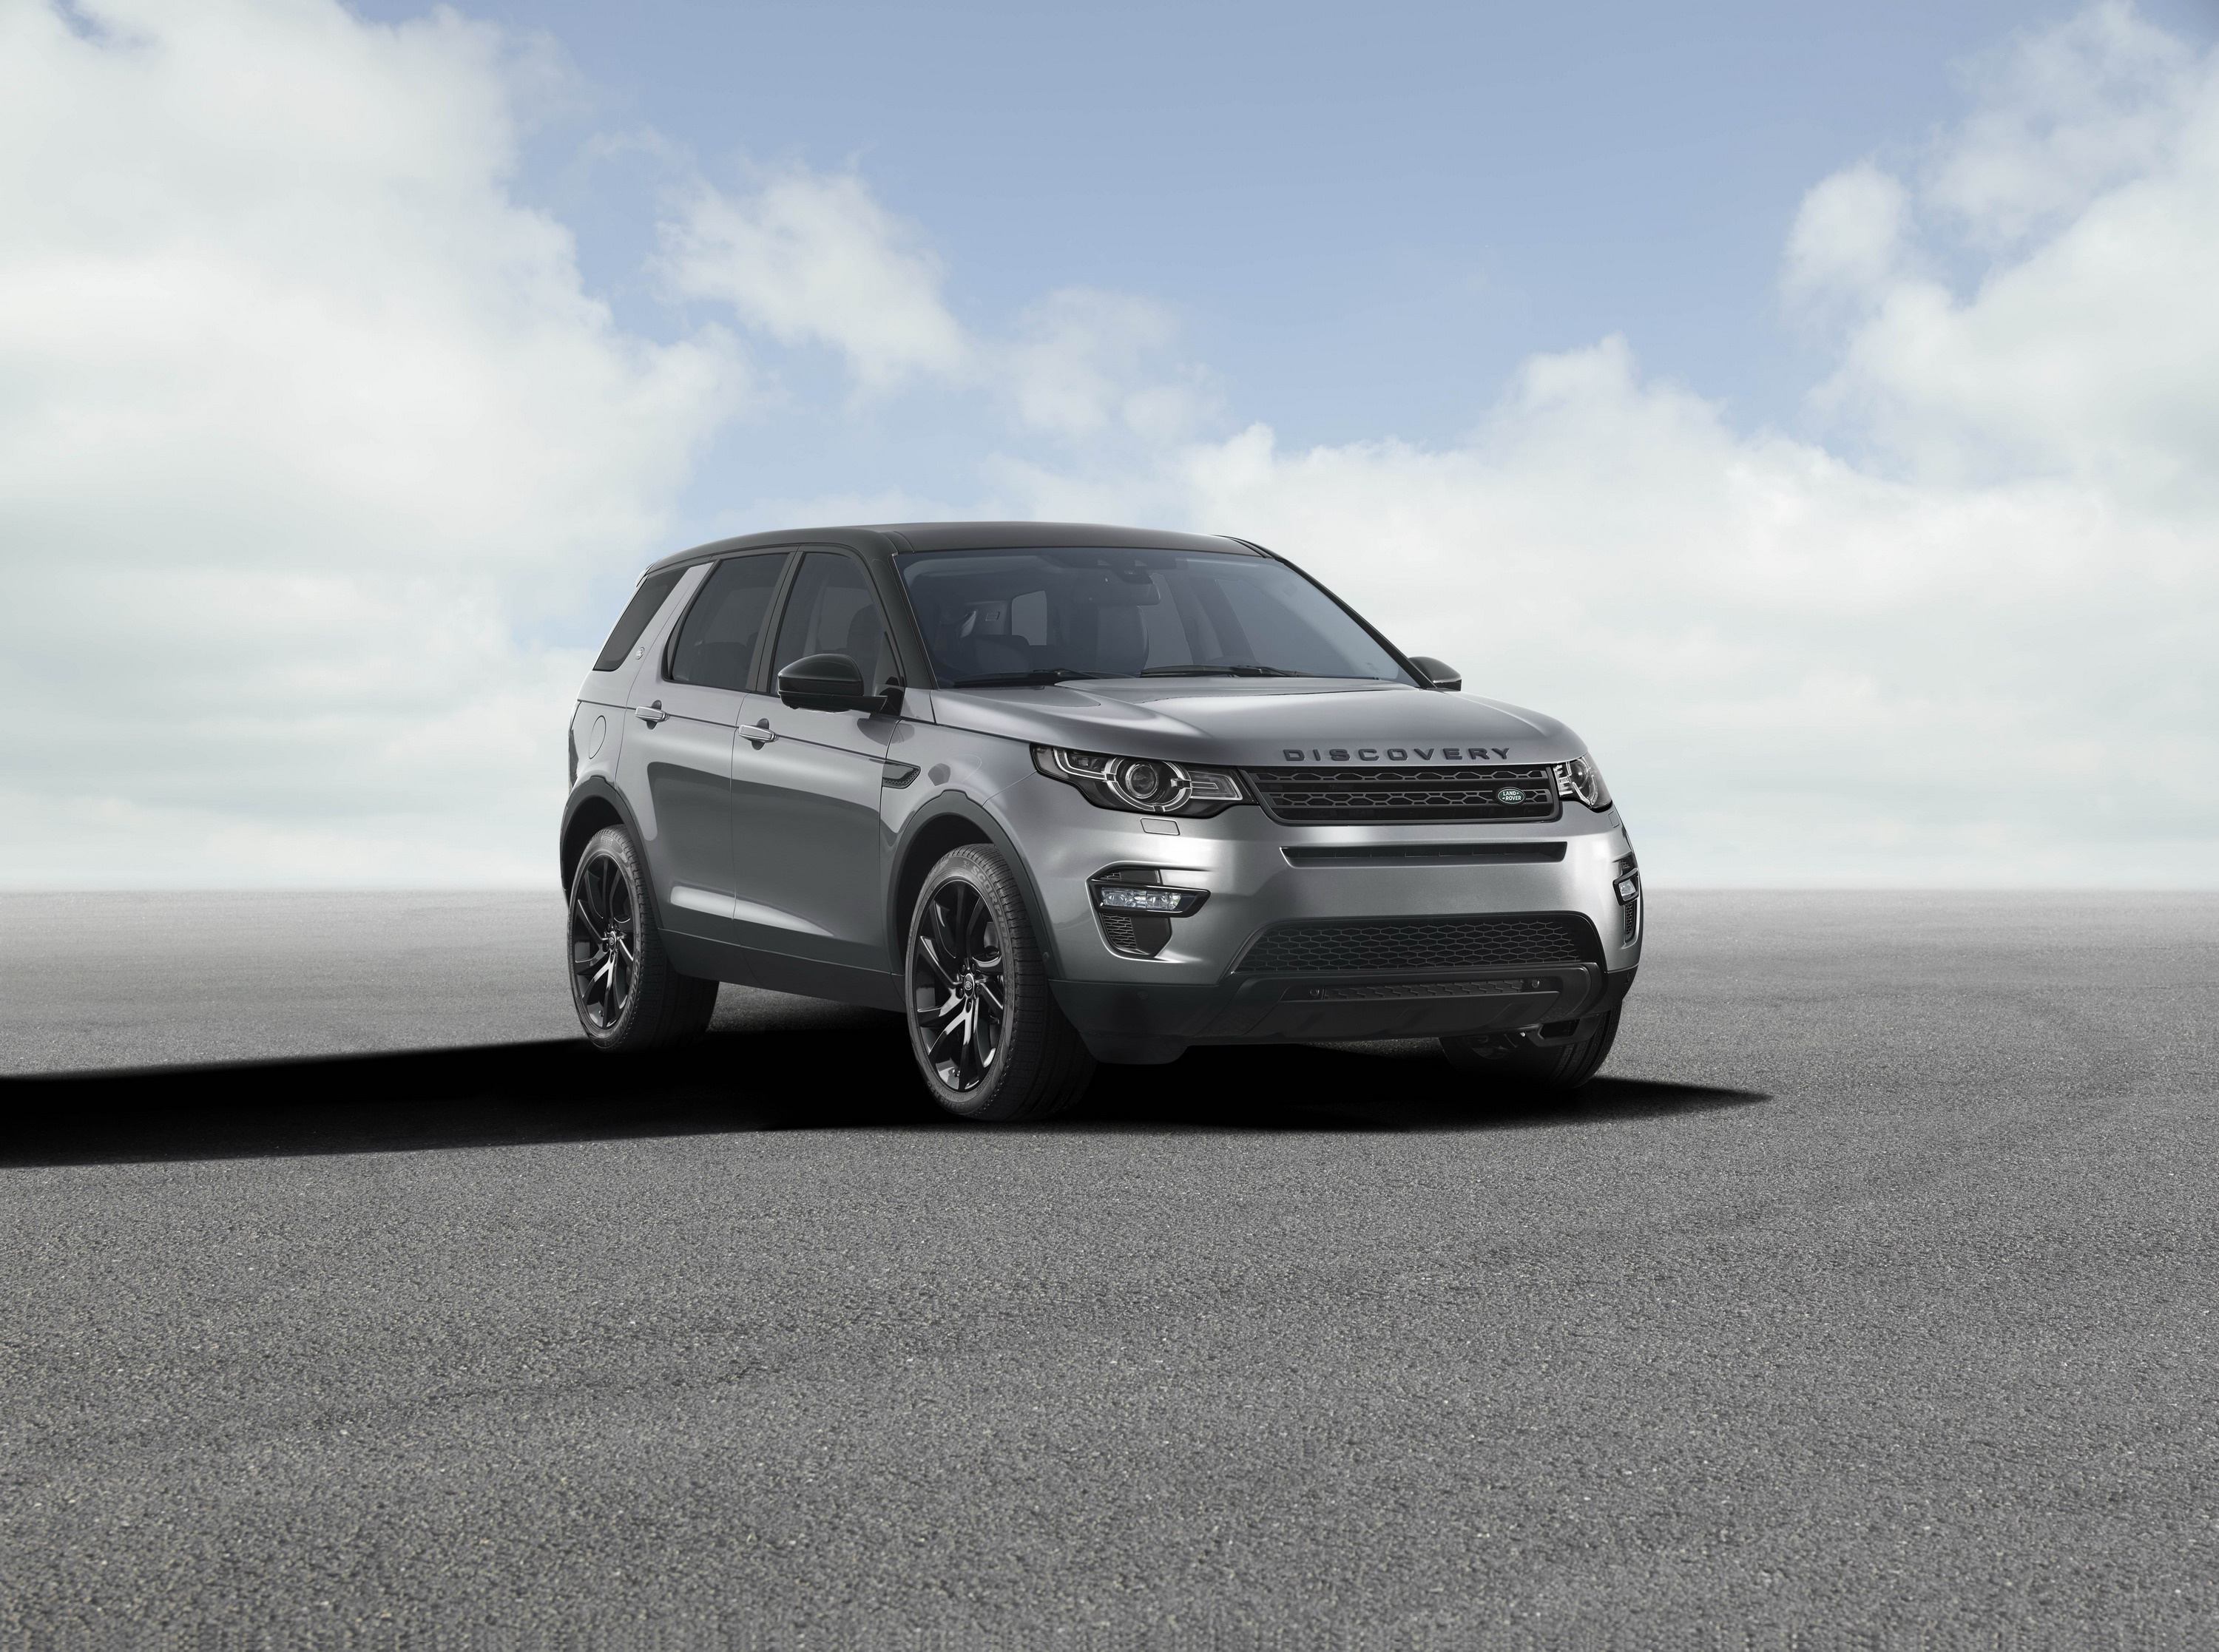 vision land previews disco sport and price discovery concept rover landrover